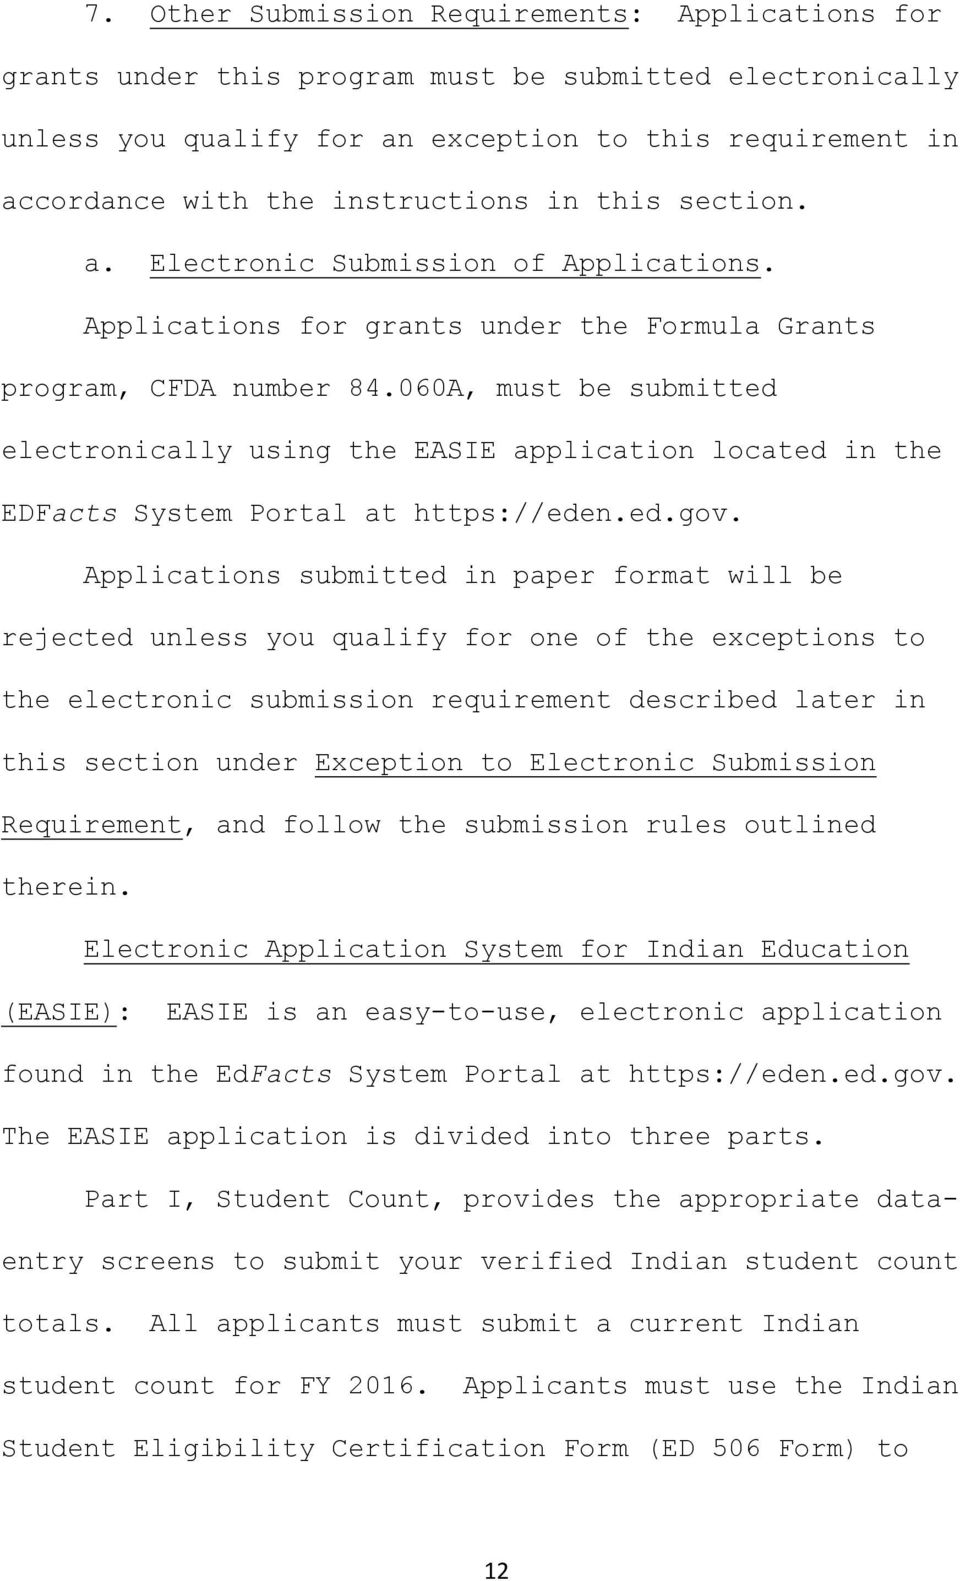 060A, must be submitted electronically using the EASIE application located in the EDFacts System Portal at https://eden.ed.gov.